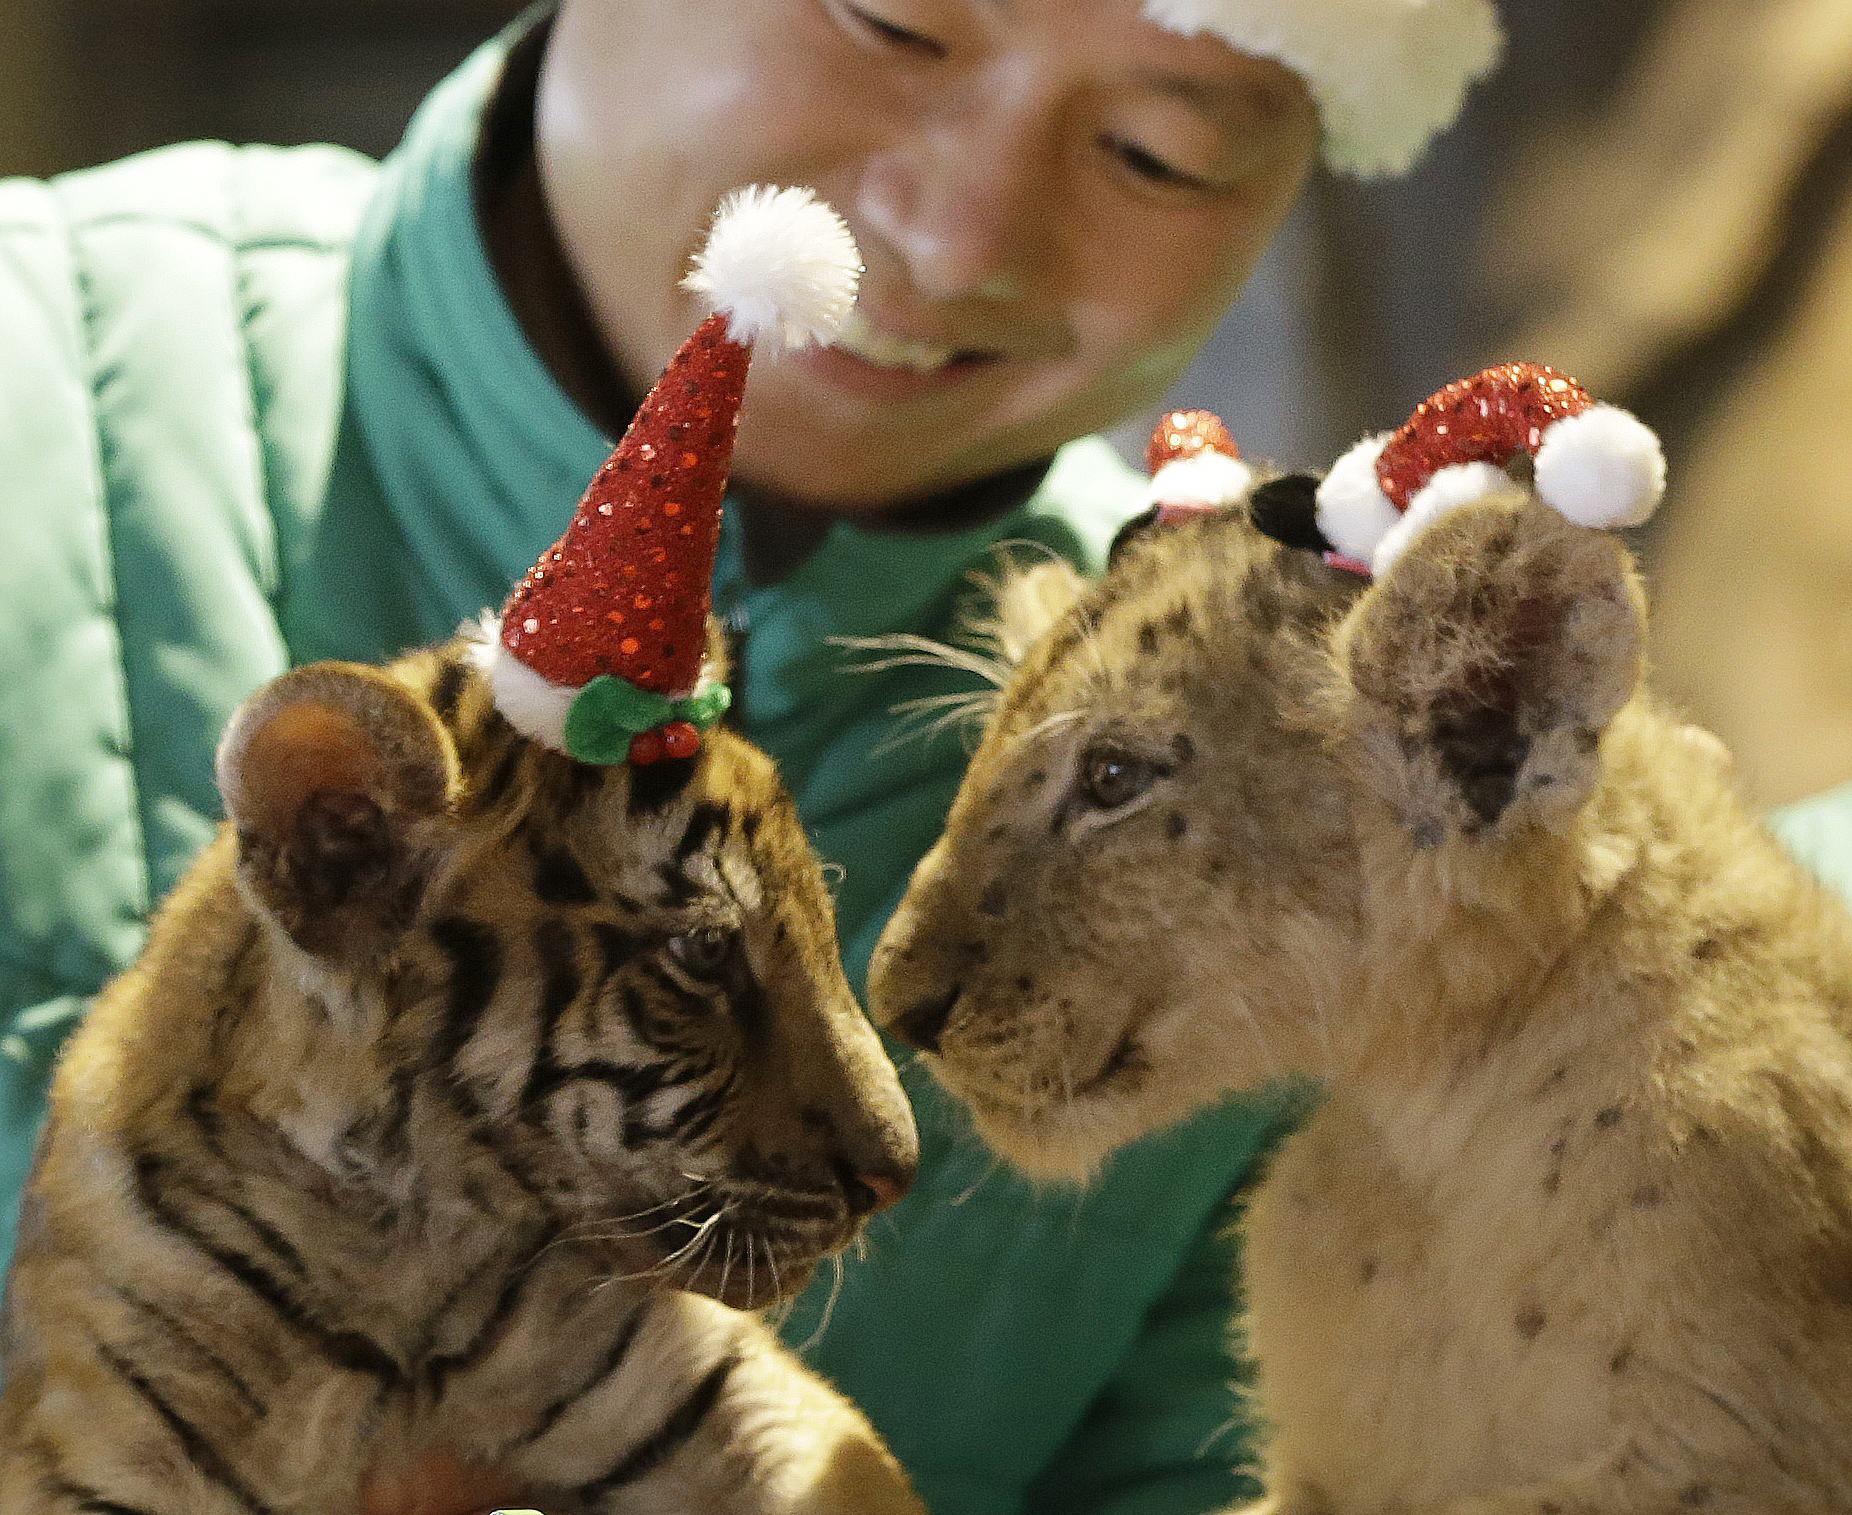 Do min jun and jang bo ri wish you a merry christmas for Christmas pictures of baby animals